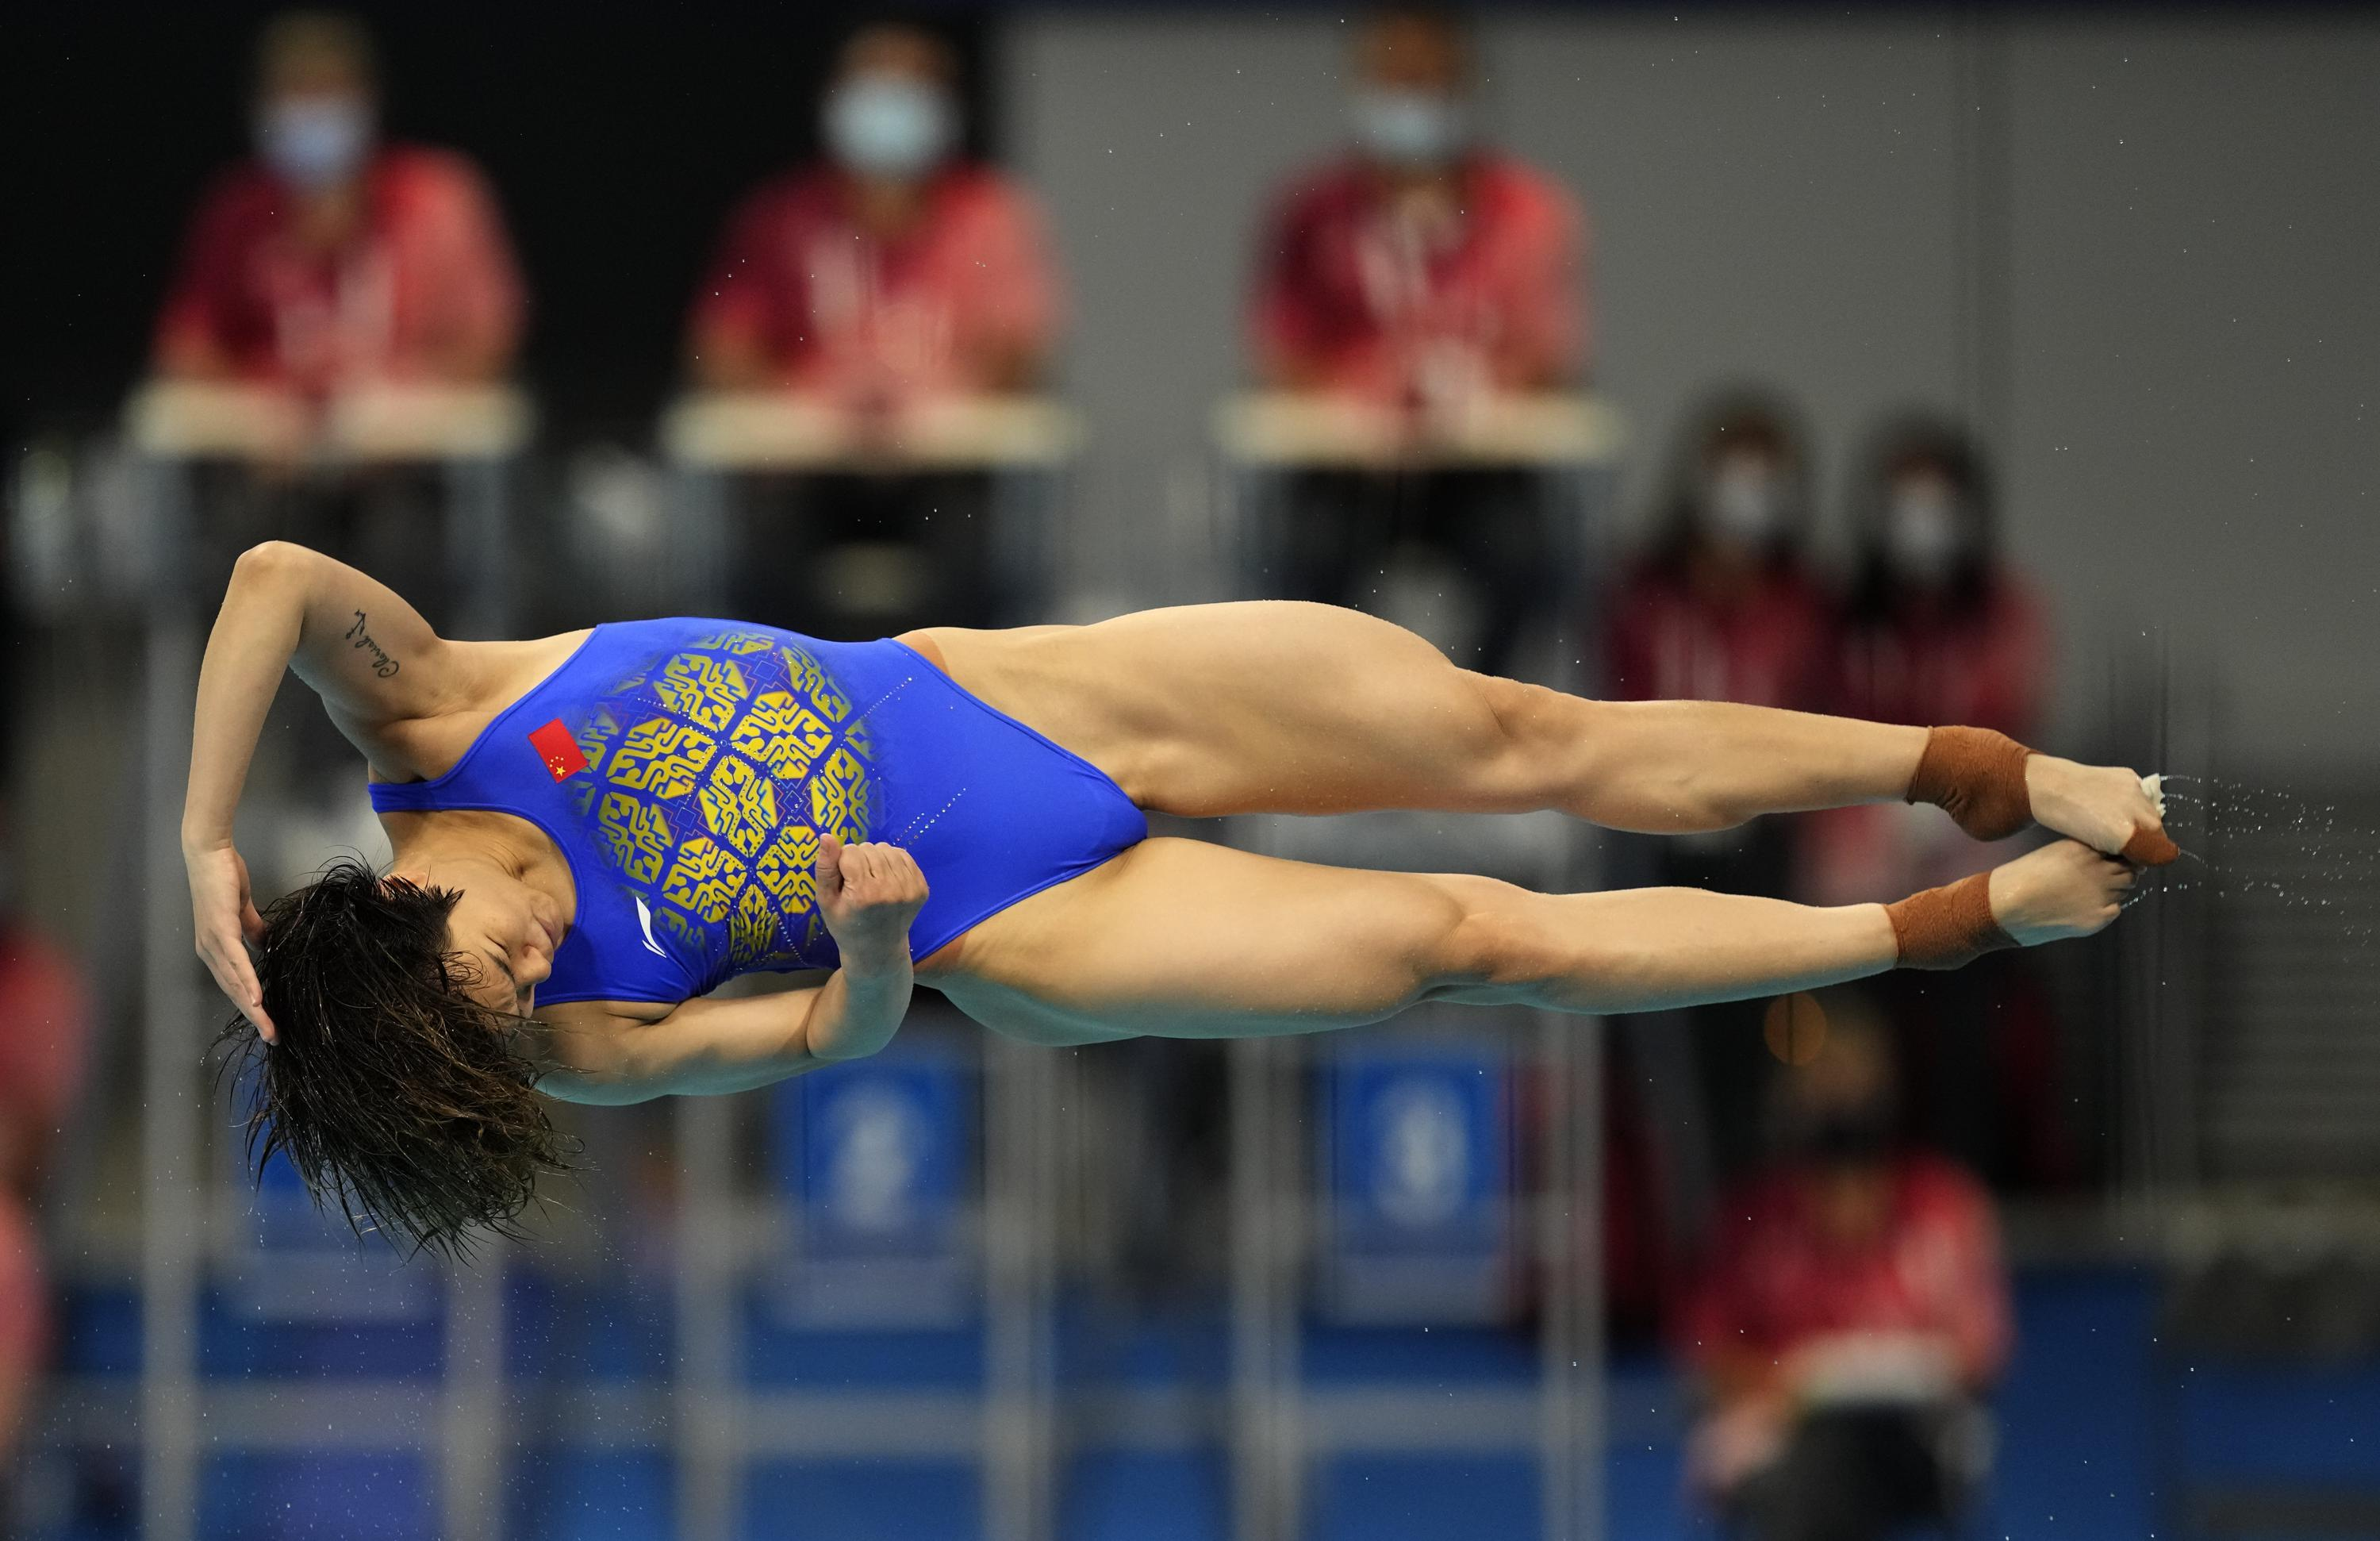 Shi , Wang lead the way again in Olympic springboard diving